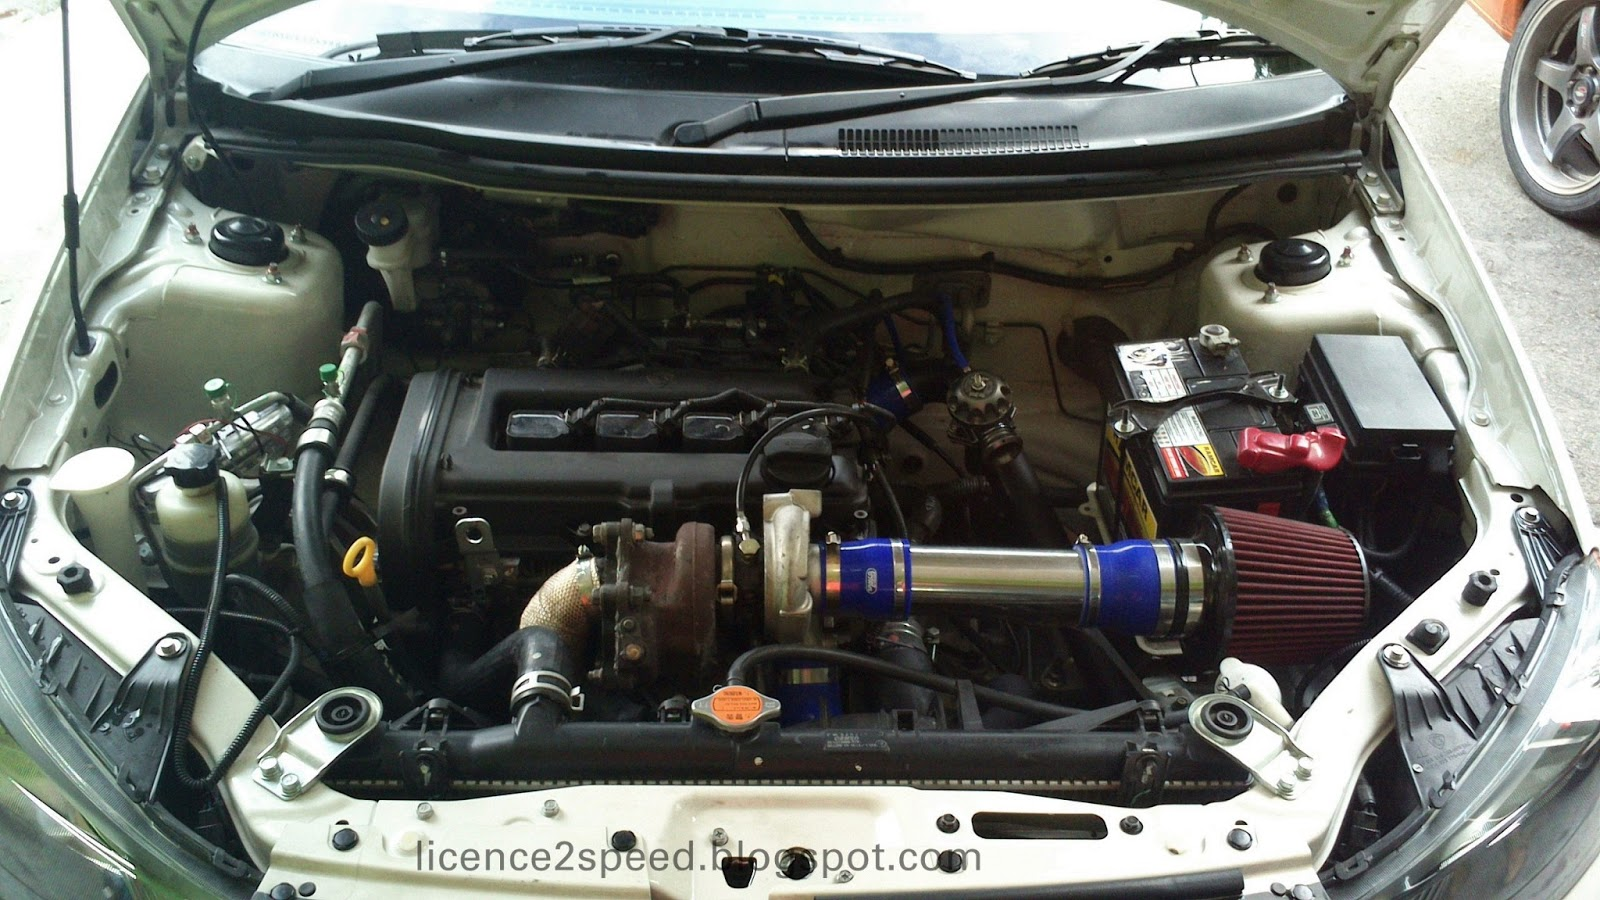 Licence to Speed - For Malaysian Automotive: 2012 Proton Saga FLX